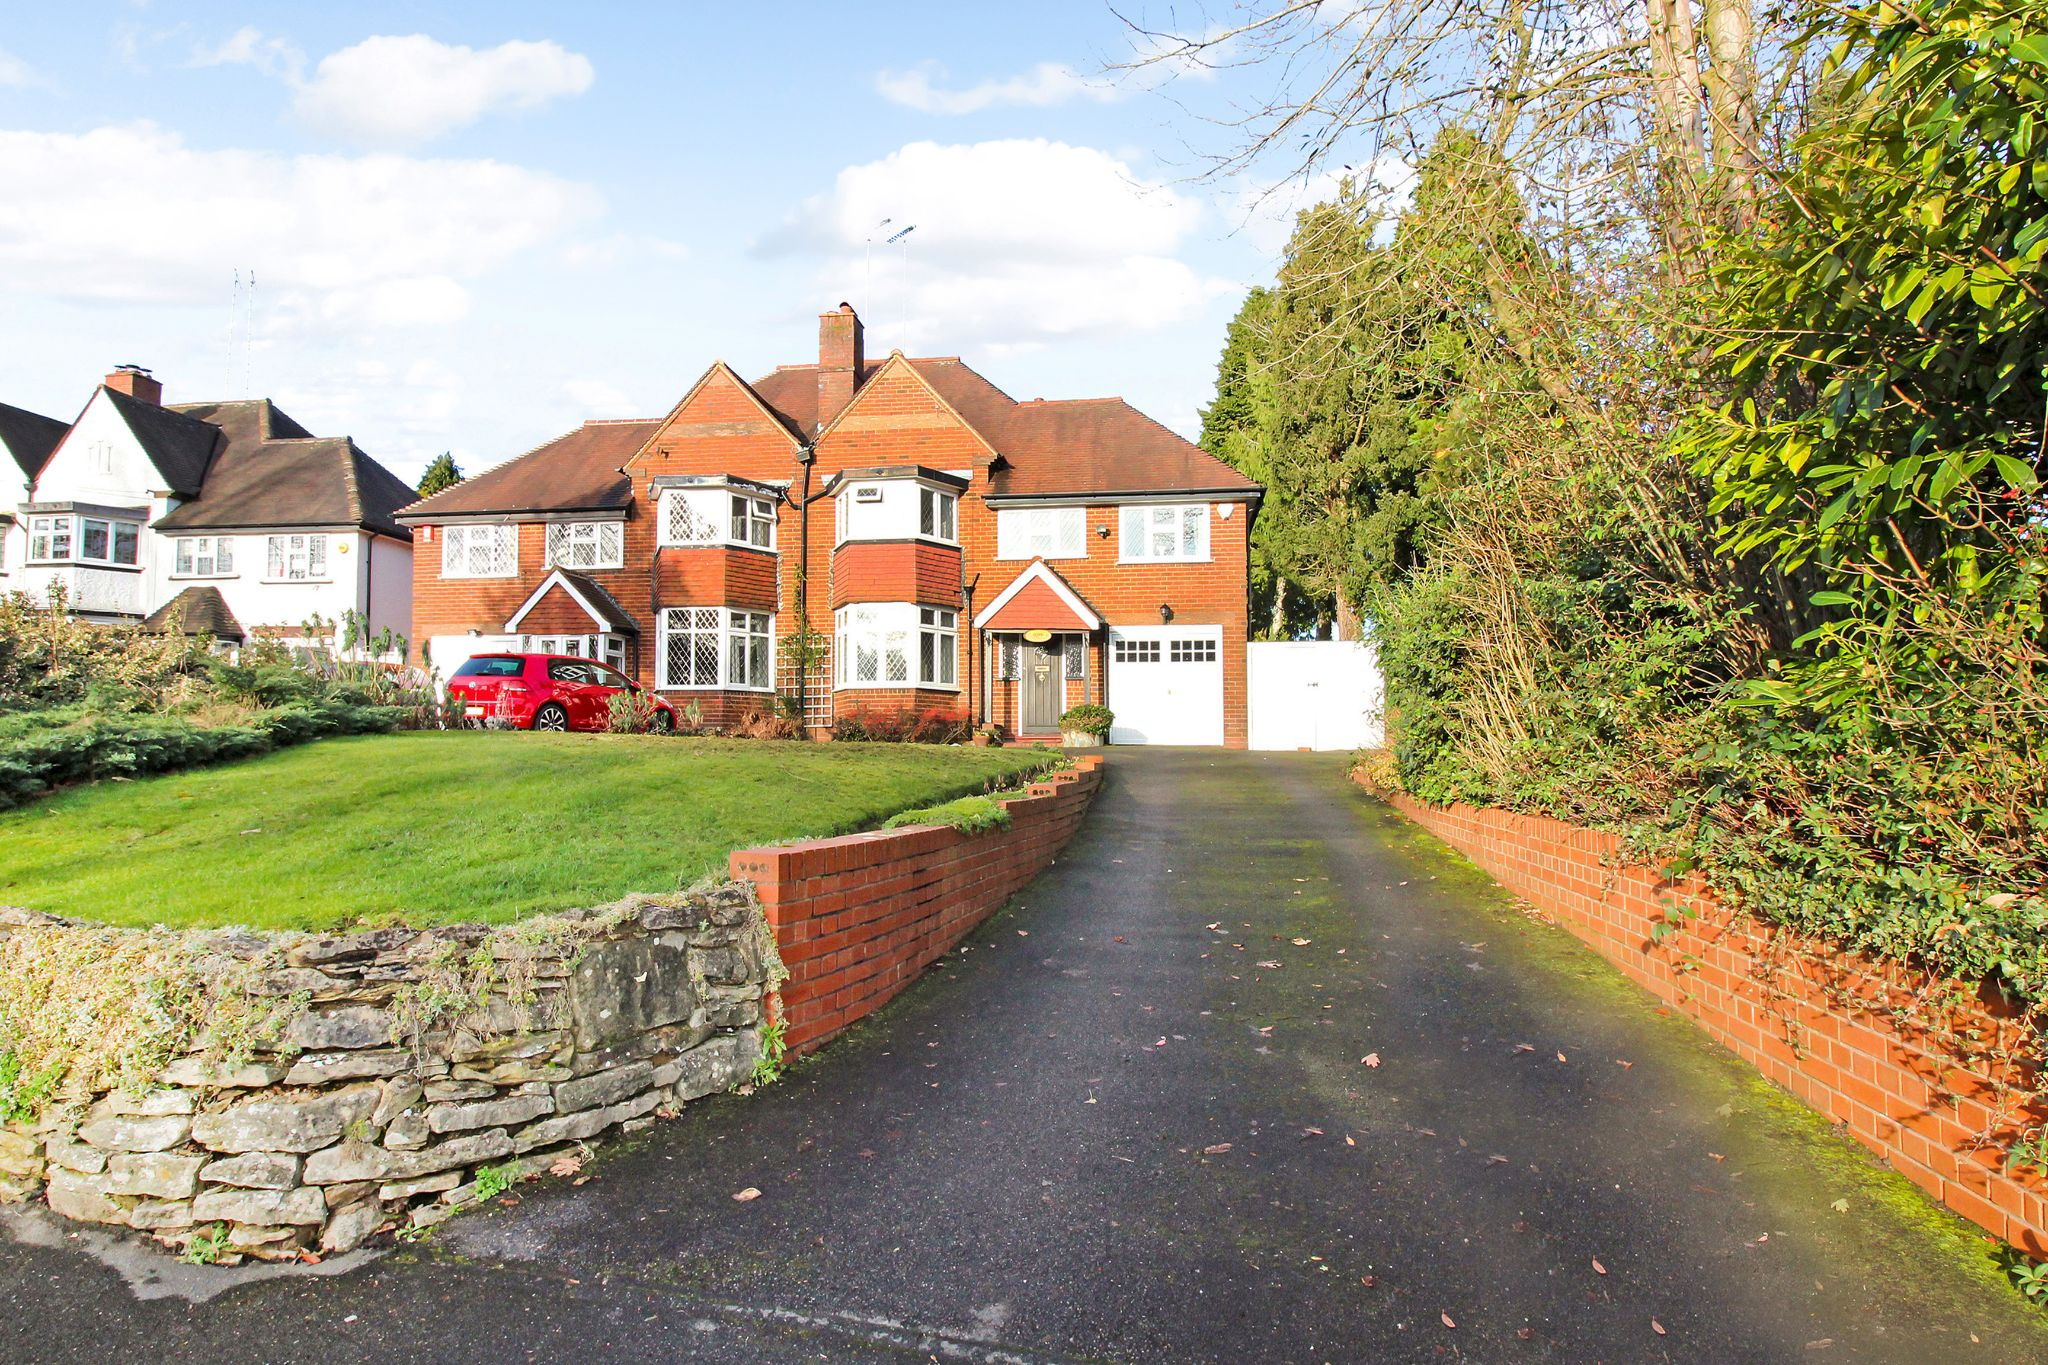 4 bedroom semi-detached house SSTC in Solihull - Photograph 16.